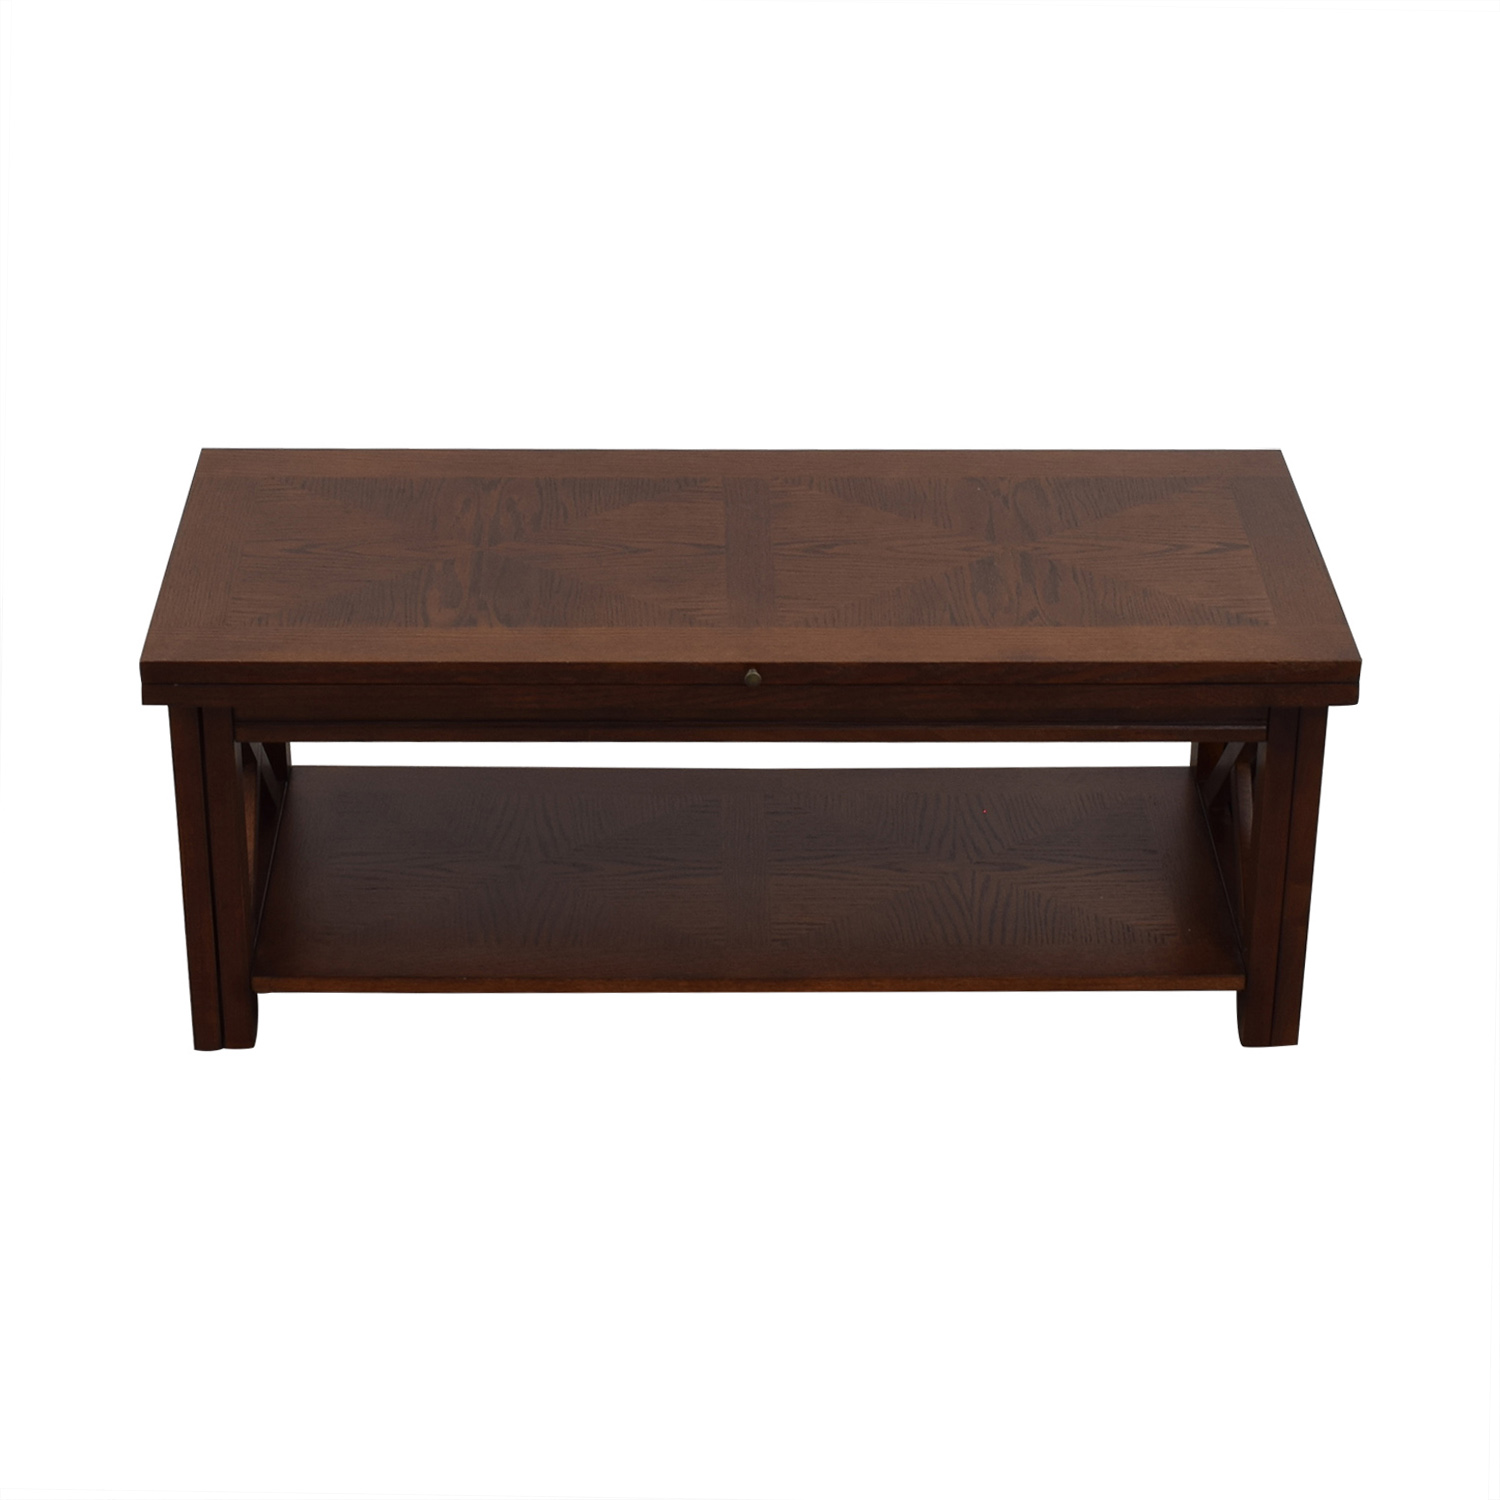 Raymour & Flanigan Raymour & Flanigan Tucson Extendable Coffee Table coupon